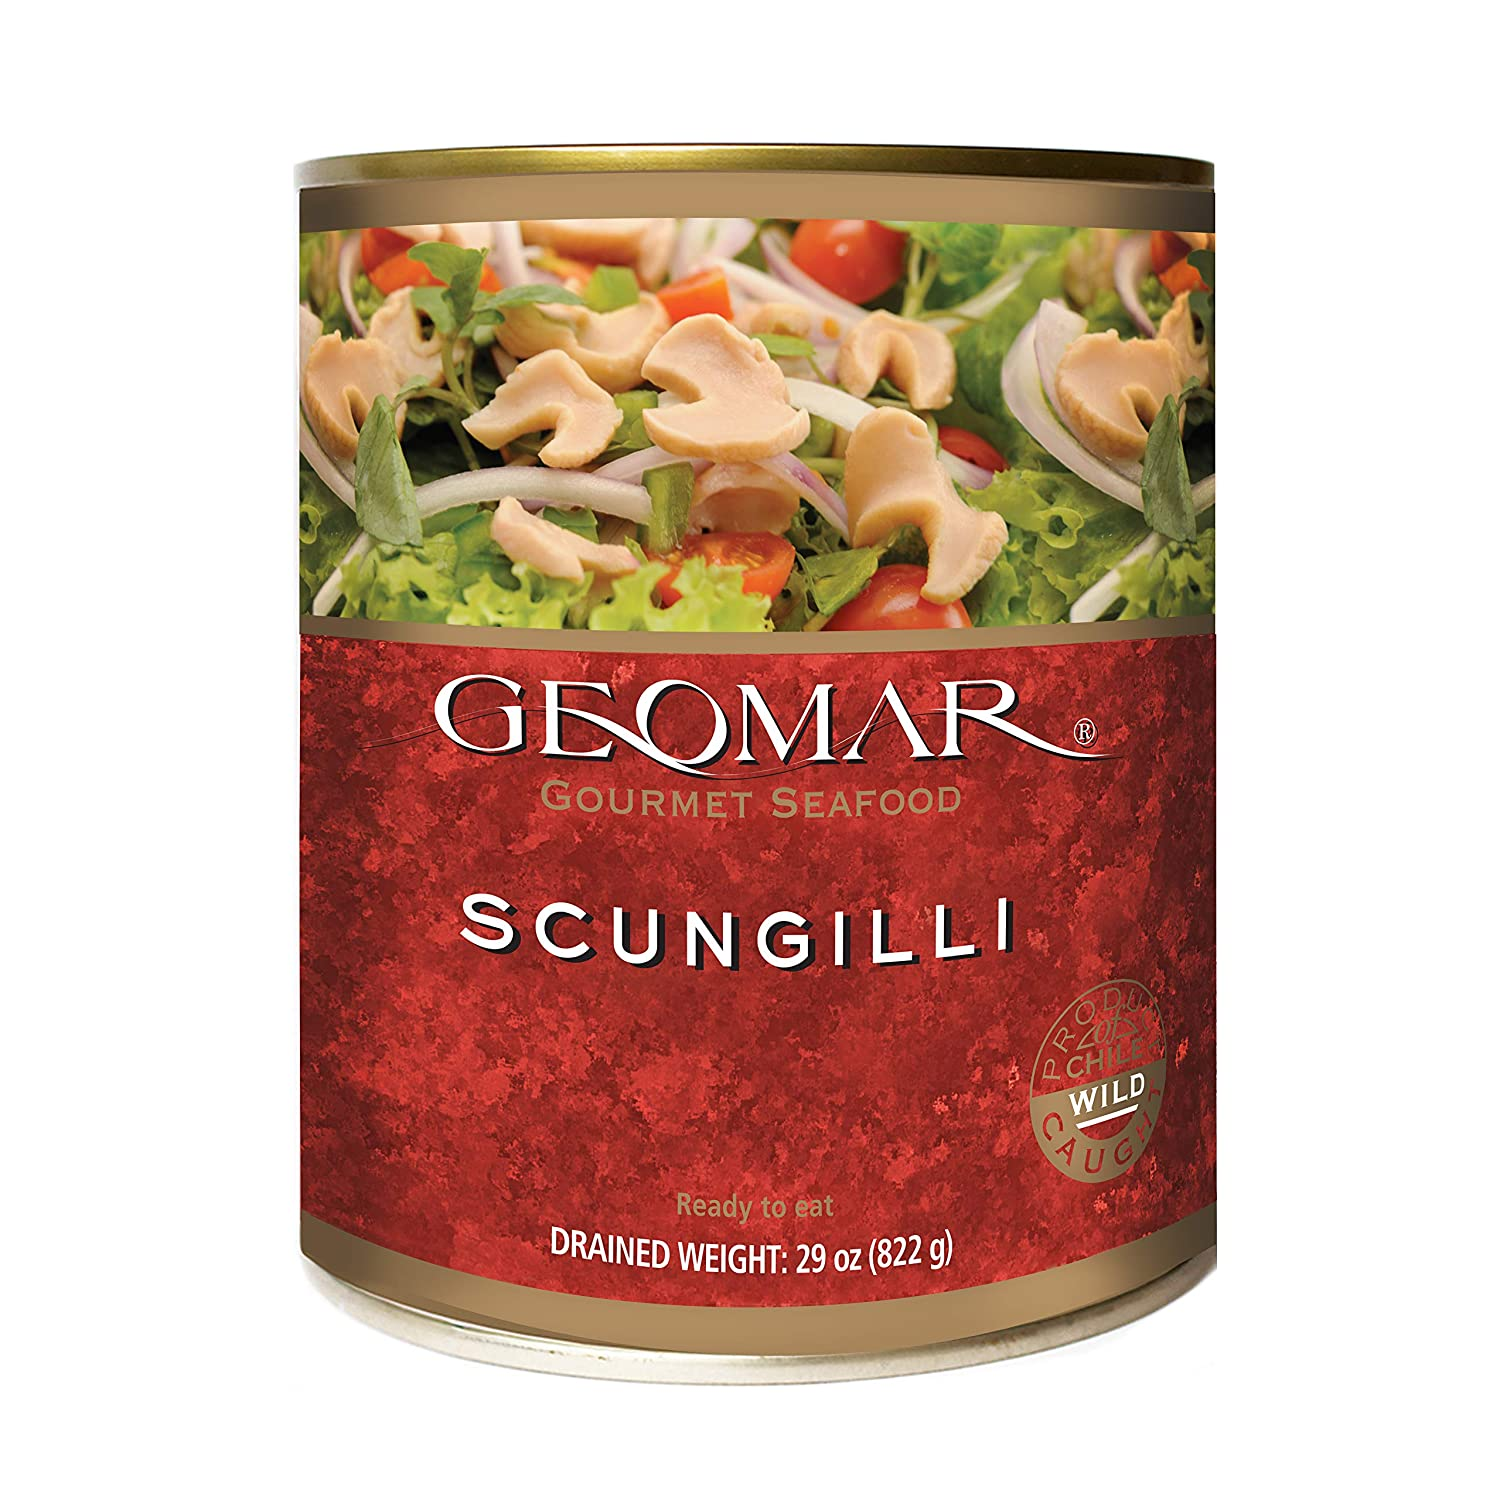 Canned Scungilli by GEOMAR – 28 Ounce Can Sliced Conch Meat – Premium Sustainable Food Ready to Eat – All Natural No Gluten and High Protein Concentration – Hand Picked and Selected By Fishermen